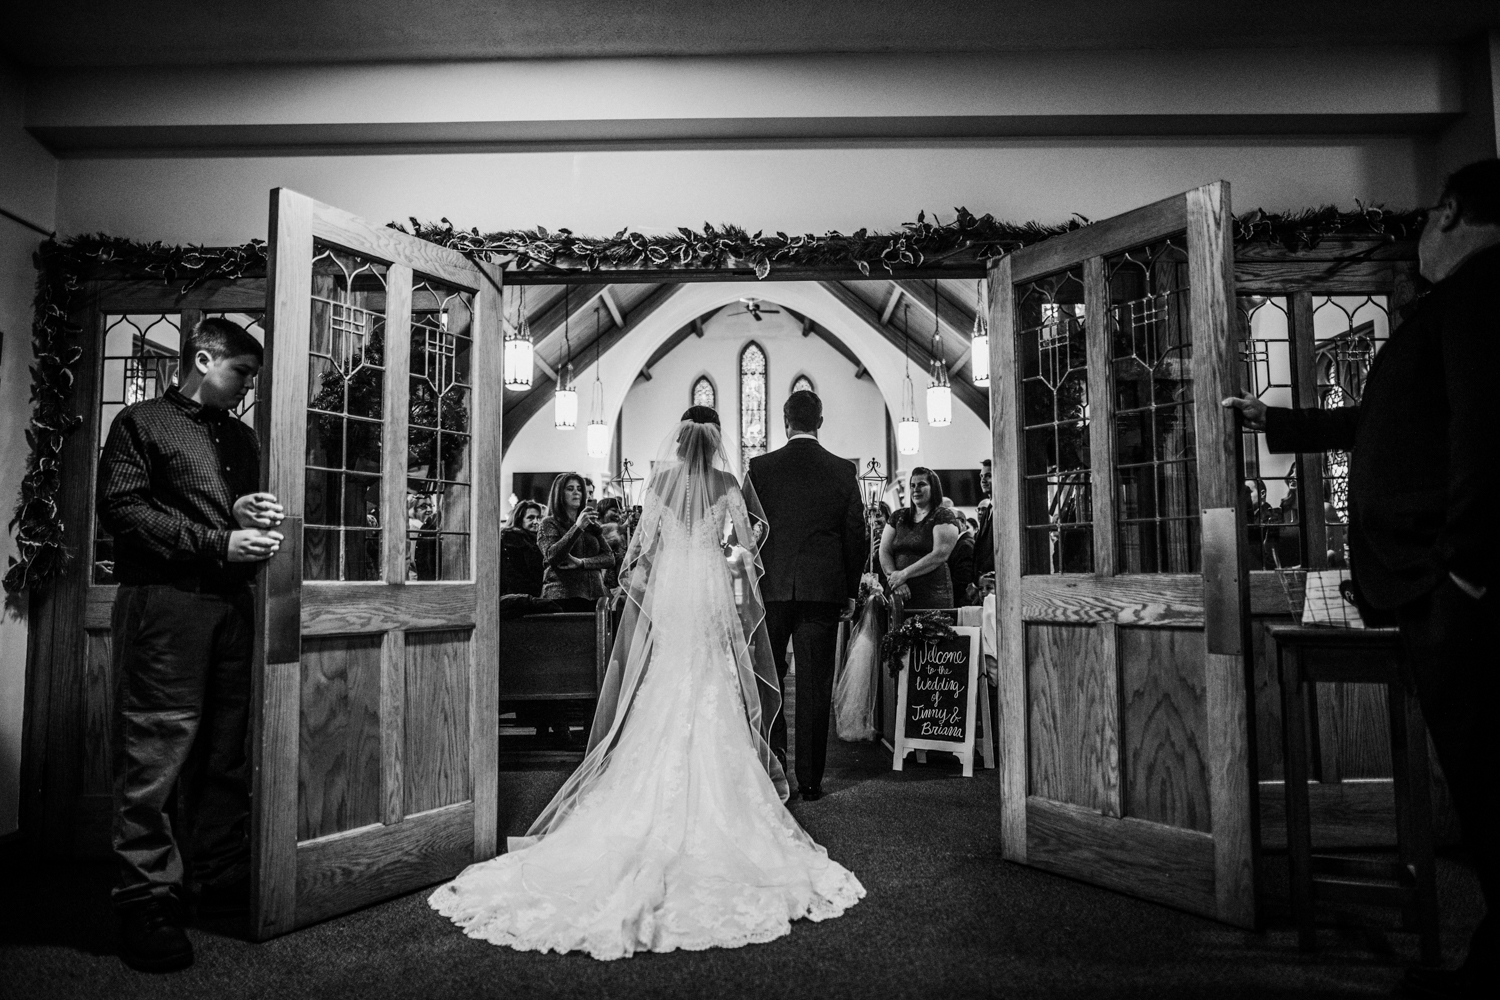 The-Mansion-NJ-Wedding-Jenna-Lynn-Photography-BriannaJimmy-CeremonyBW-57.jpg